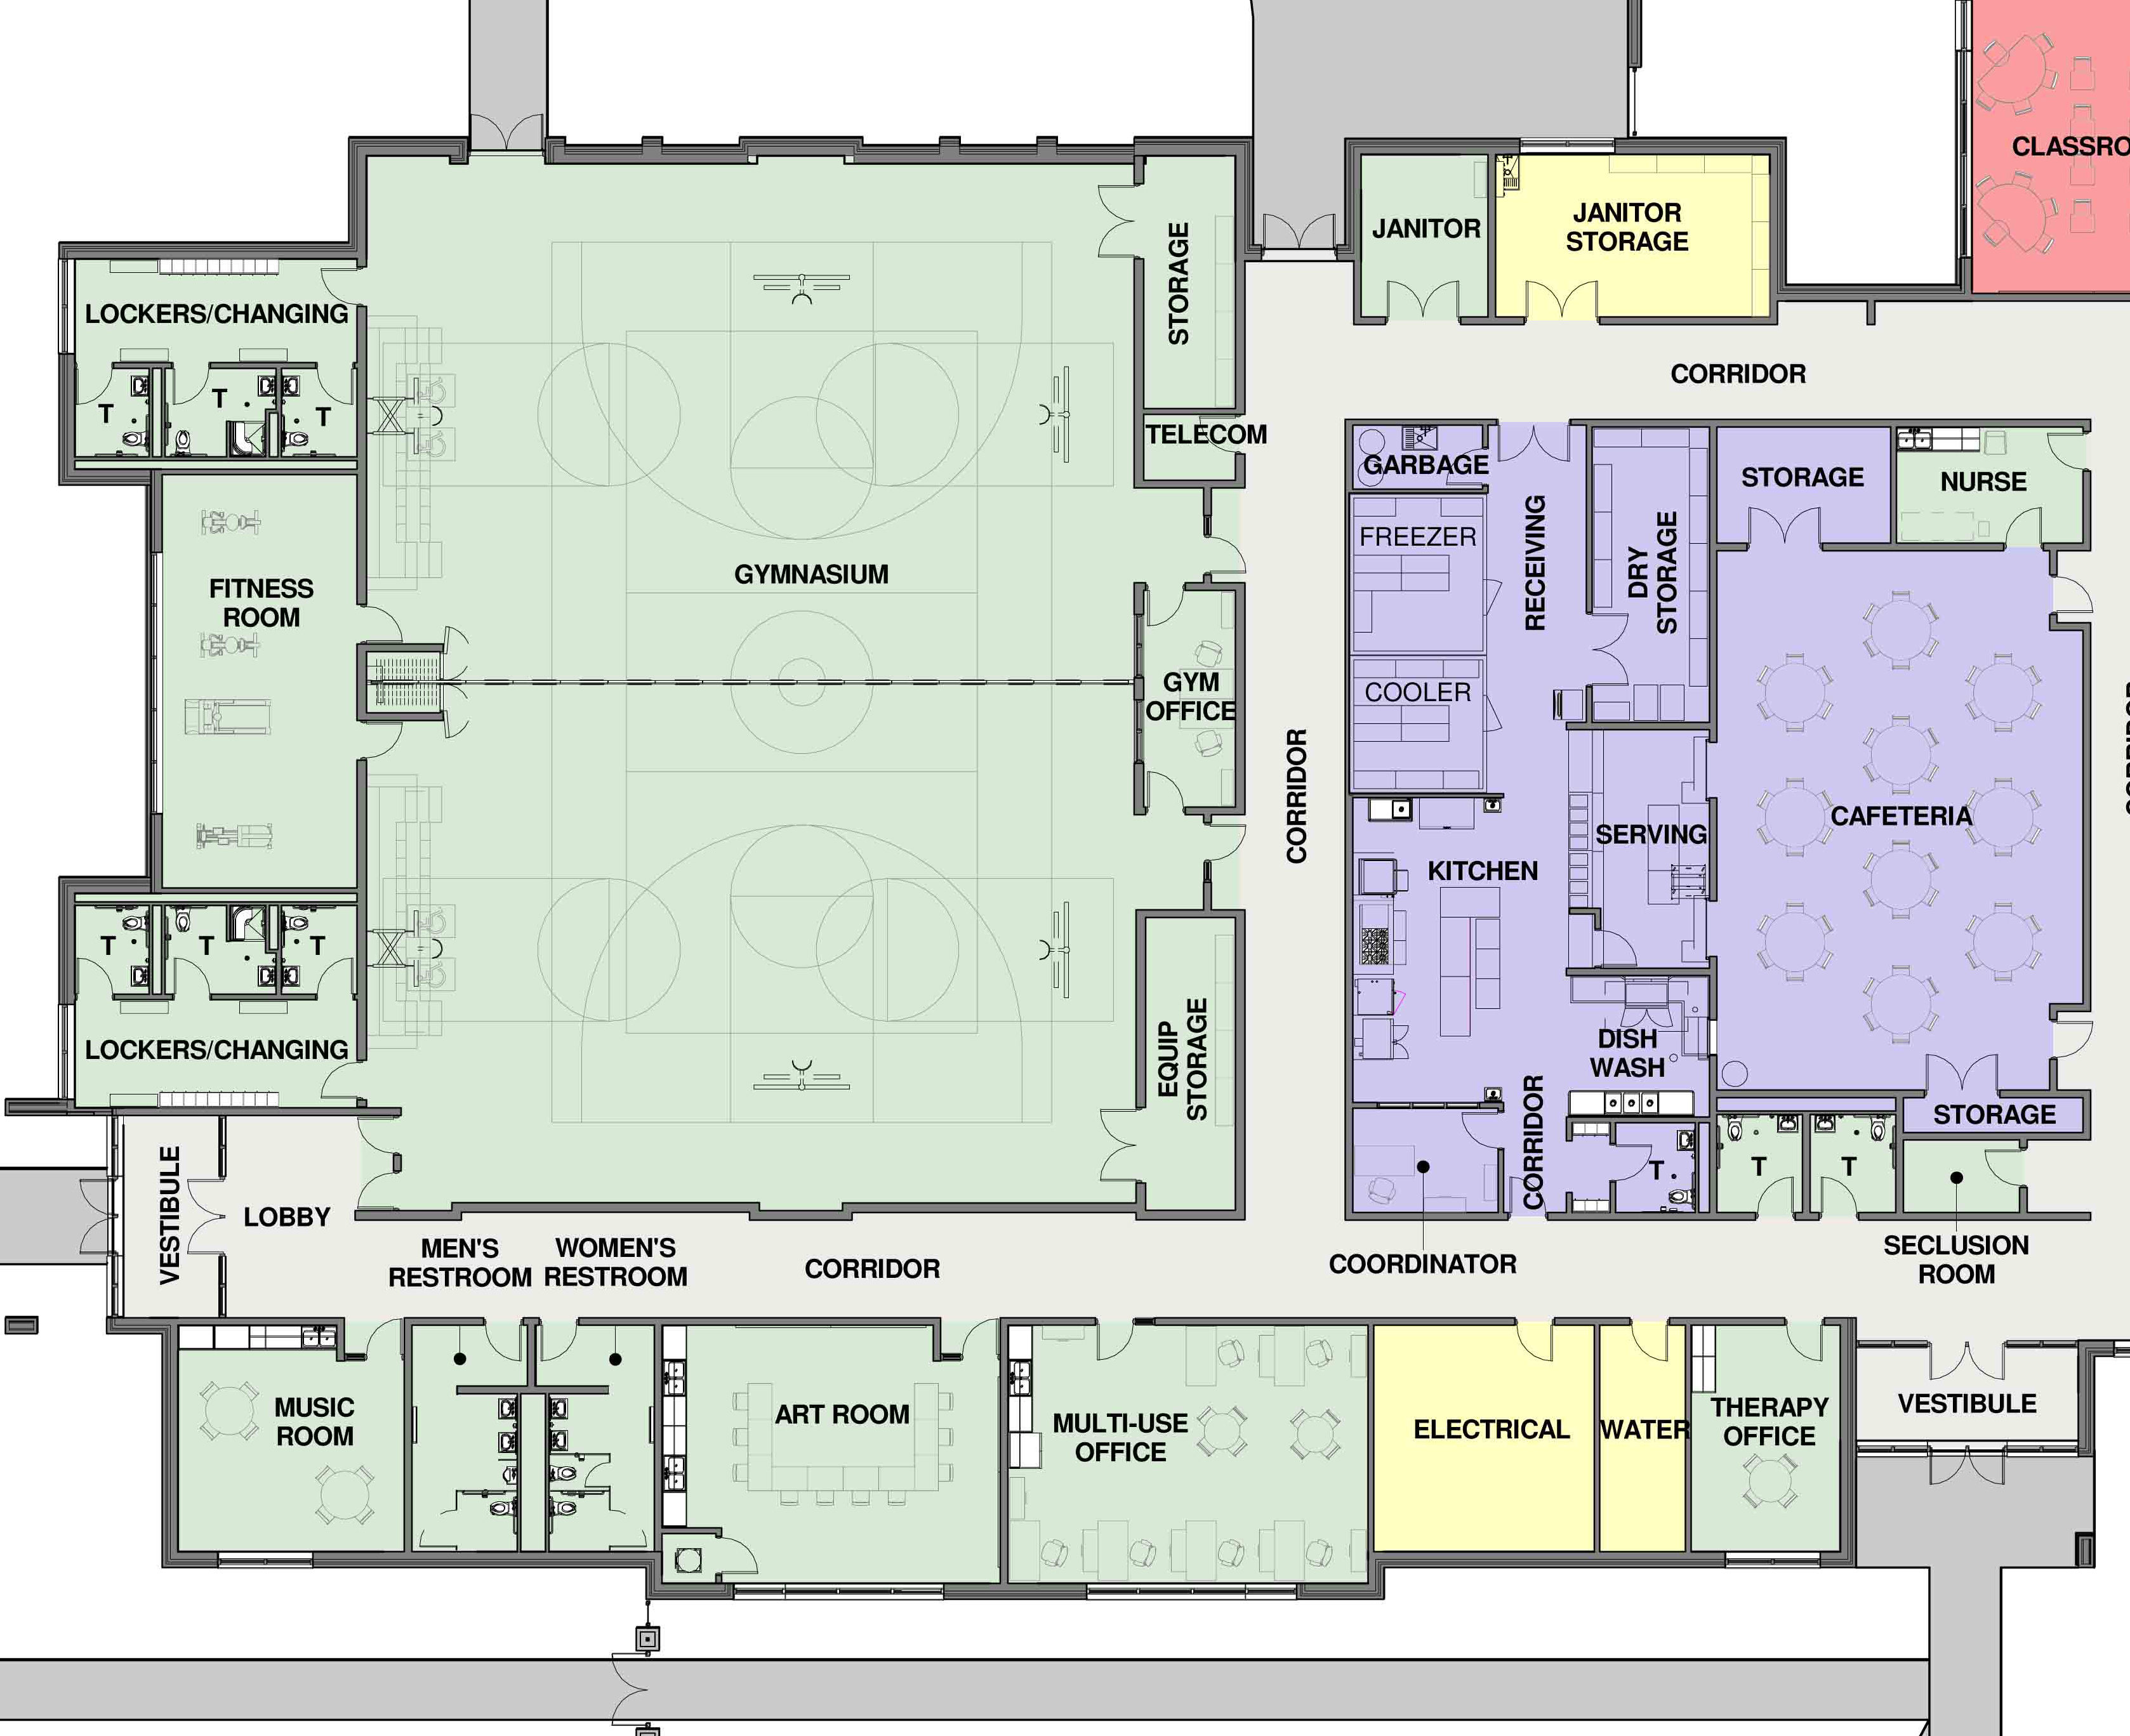 100 picture of a floor plan modular floor plans for House plans with gymnasium